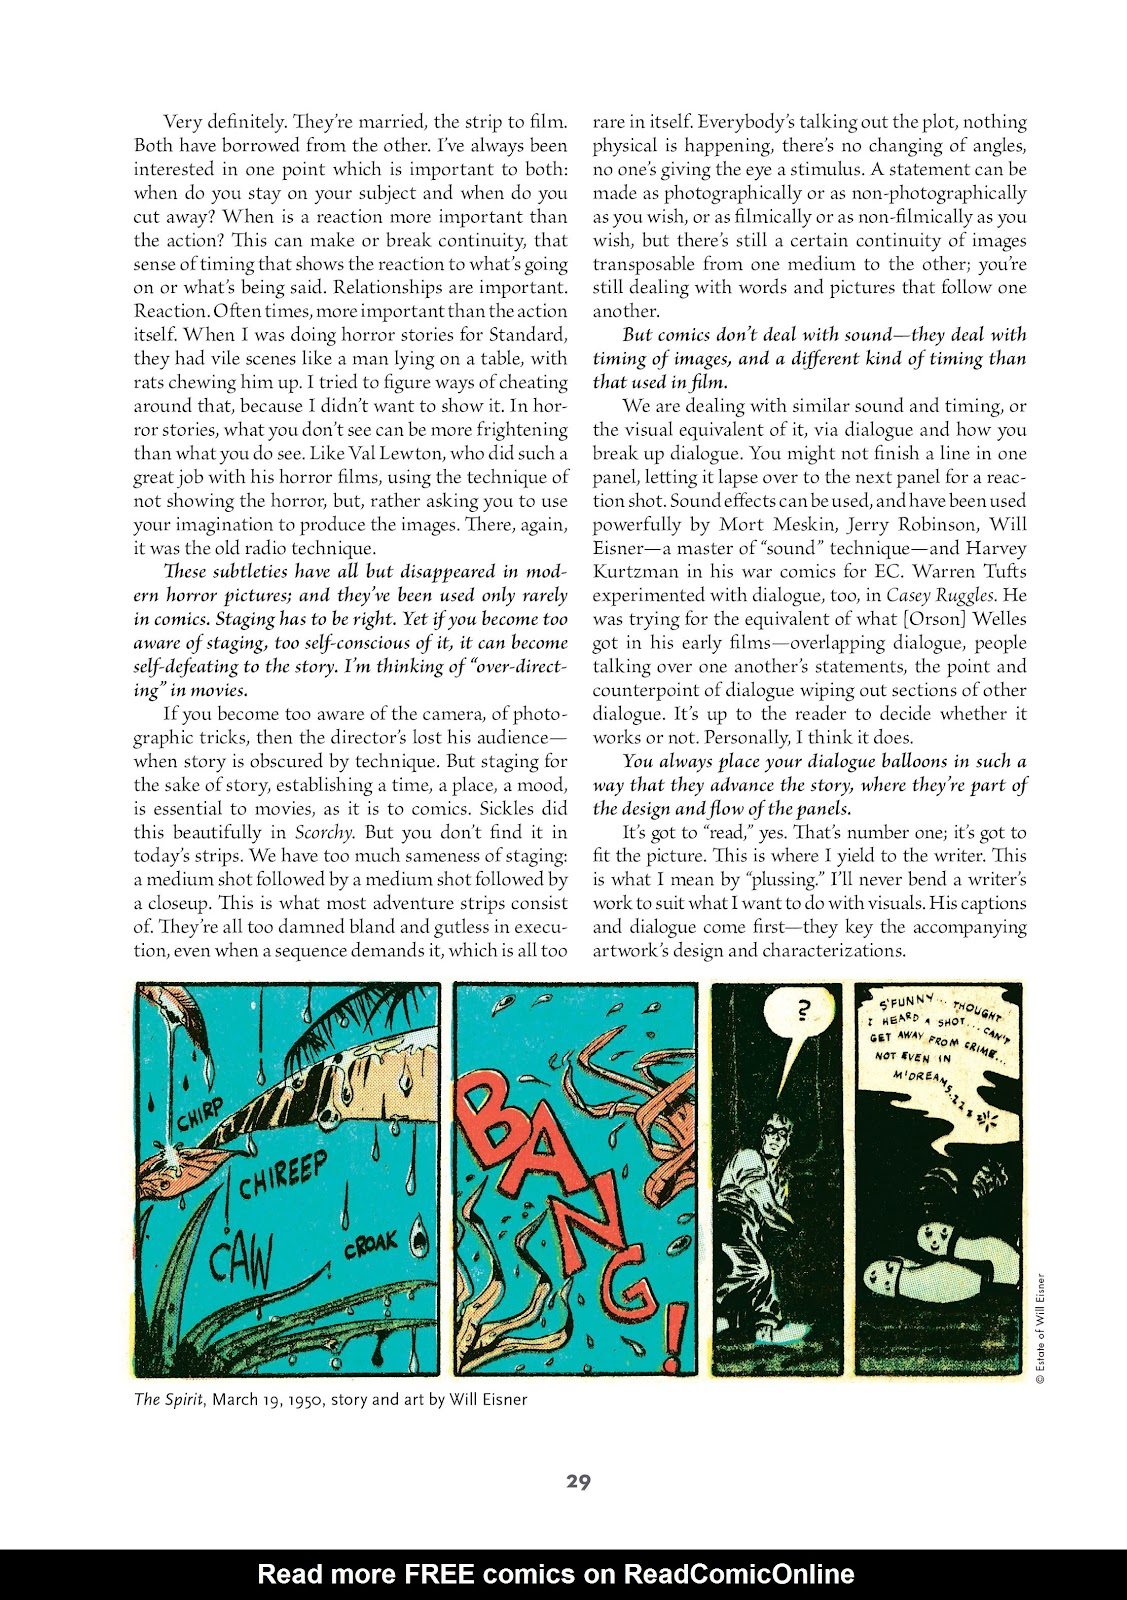 Read online Setting the Standard: Comics by Alex Toth 1952-1954 comic -  Issue # TPB (Part 1) - 28